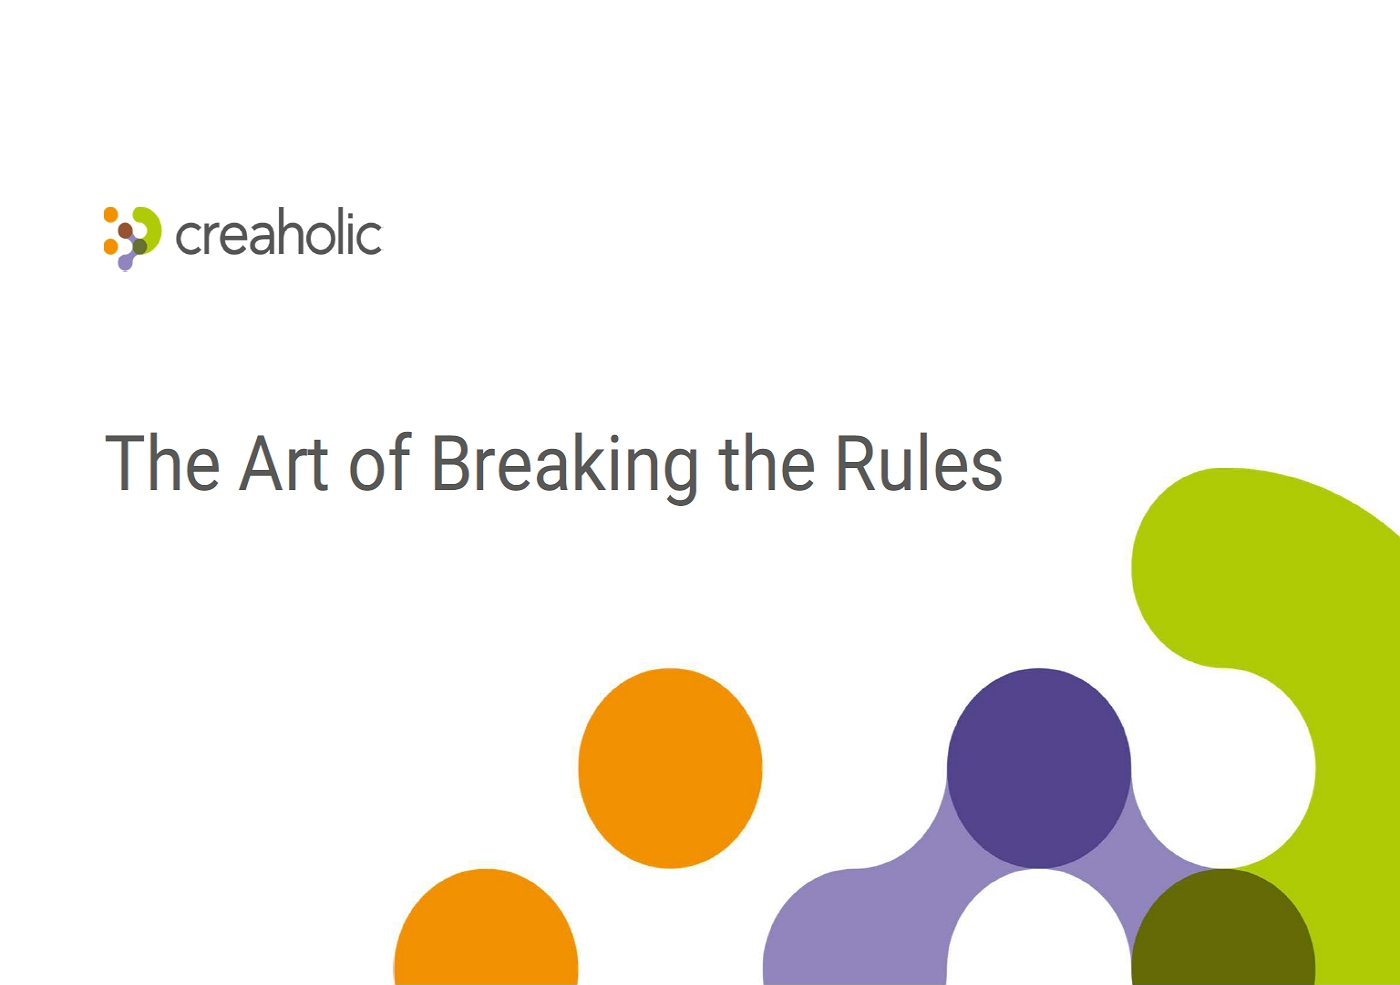 The Art of breakin gthe rules